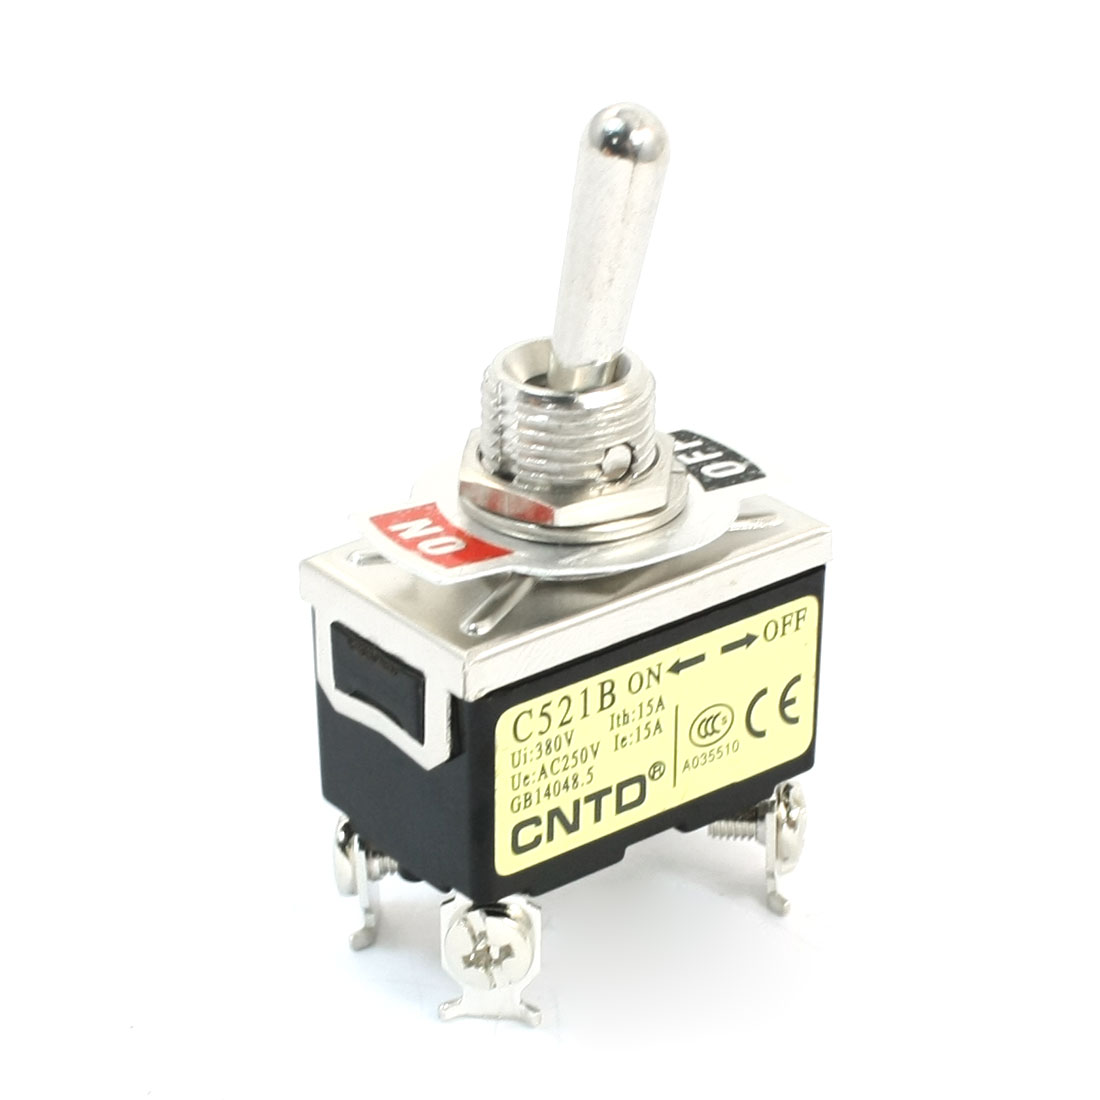 AC250V 15A DPST 2 Positions ON/OFF Locking Toggle Switch C521B